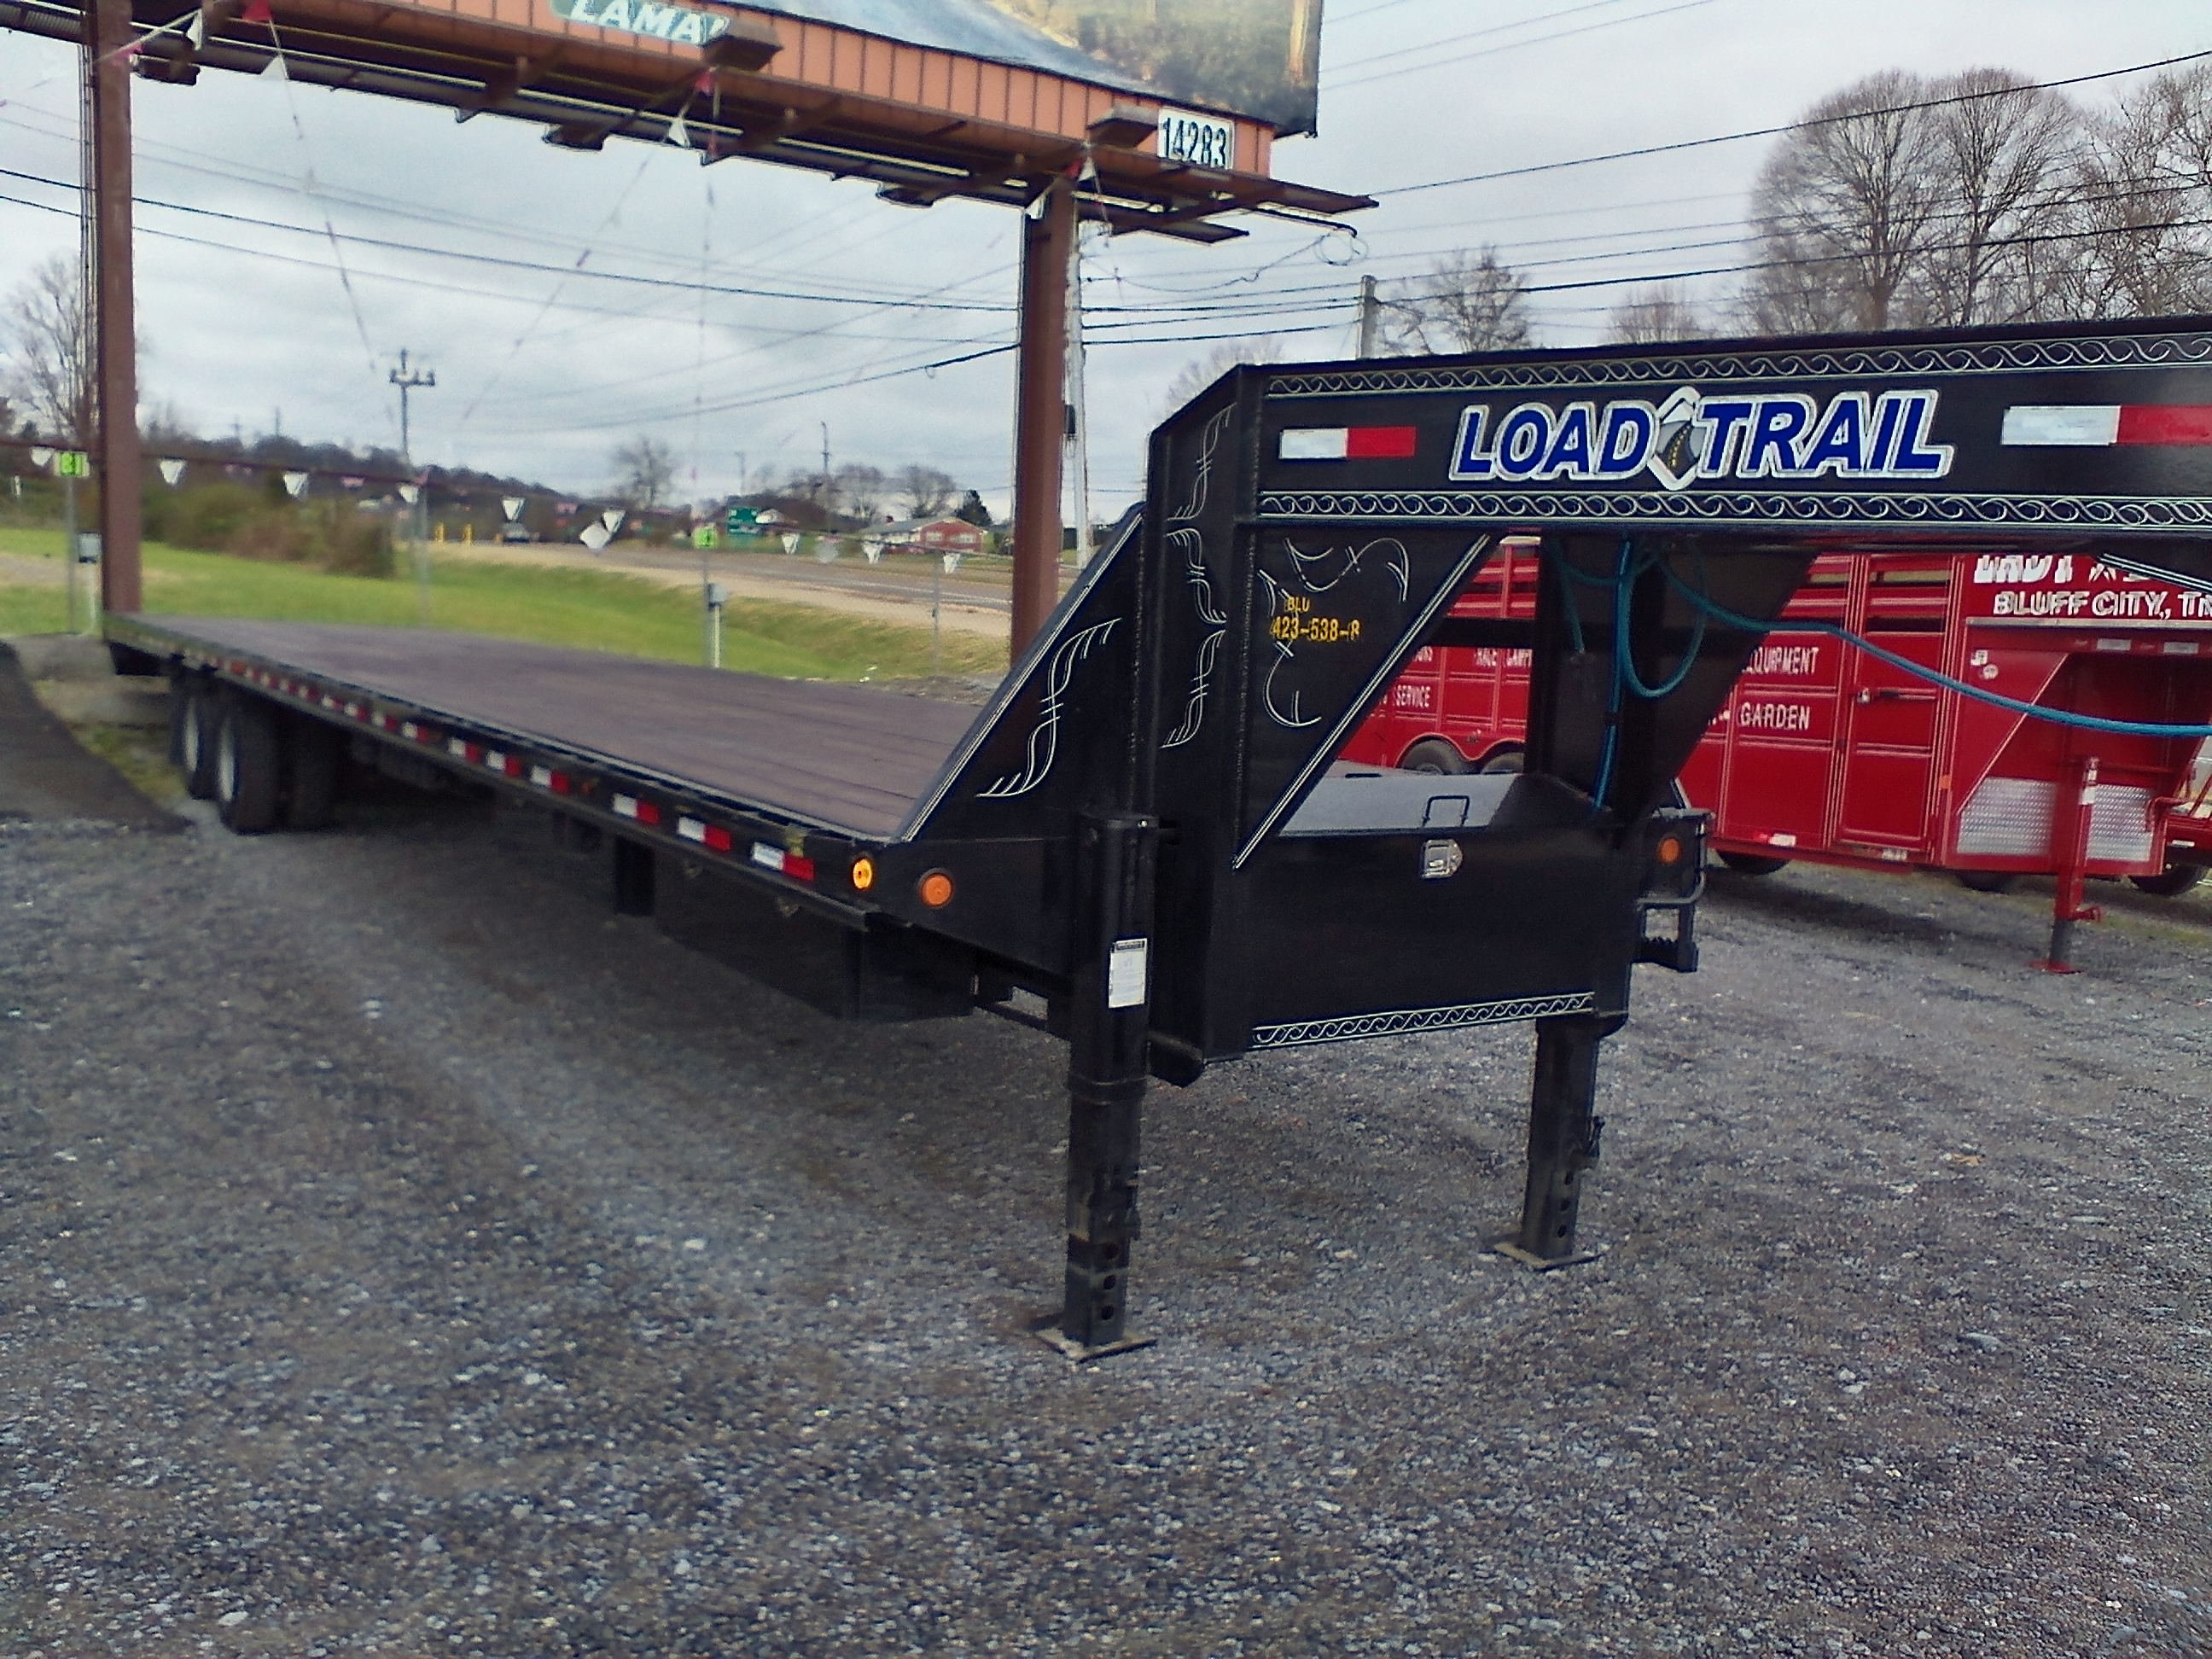 40 FT. LOAD TRAIL G.N. TRAILER Image